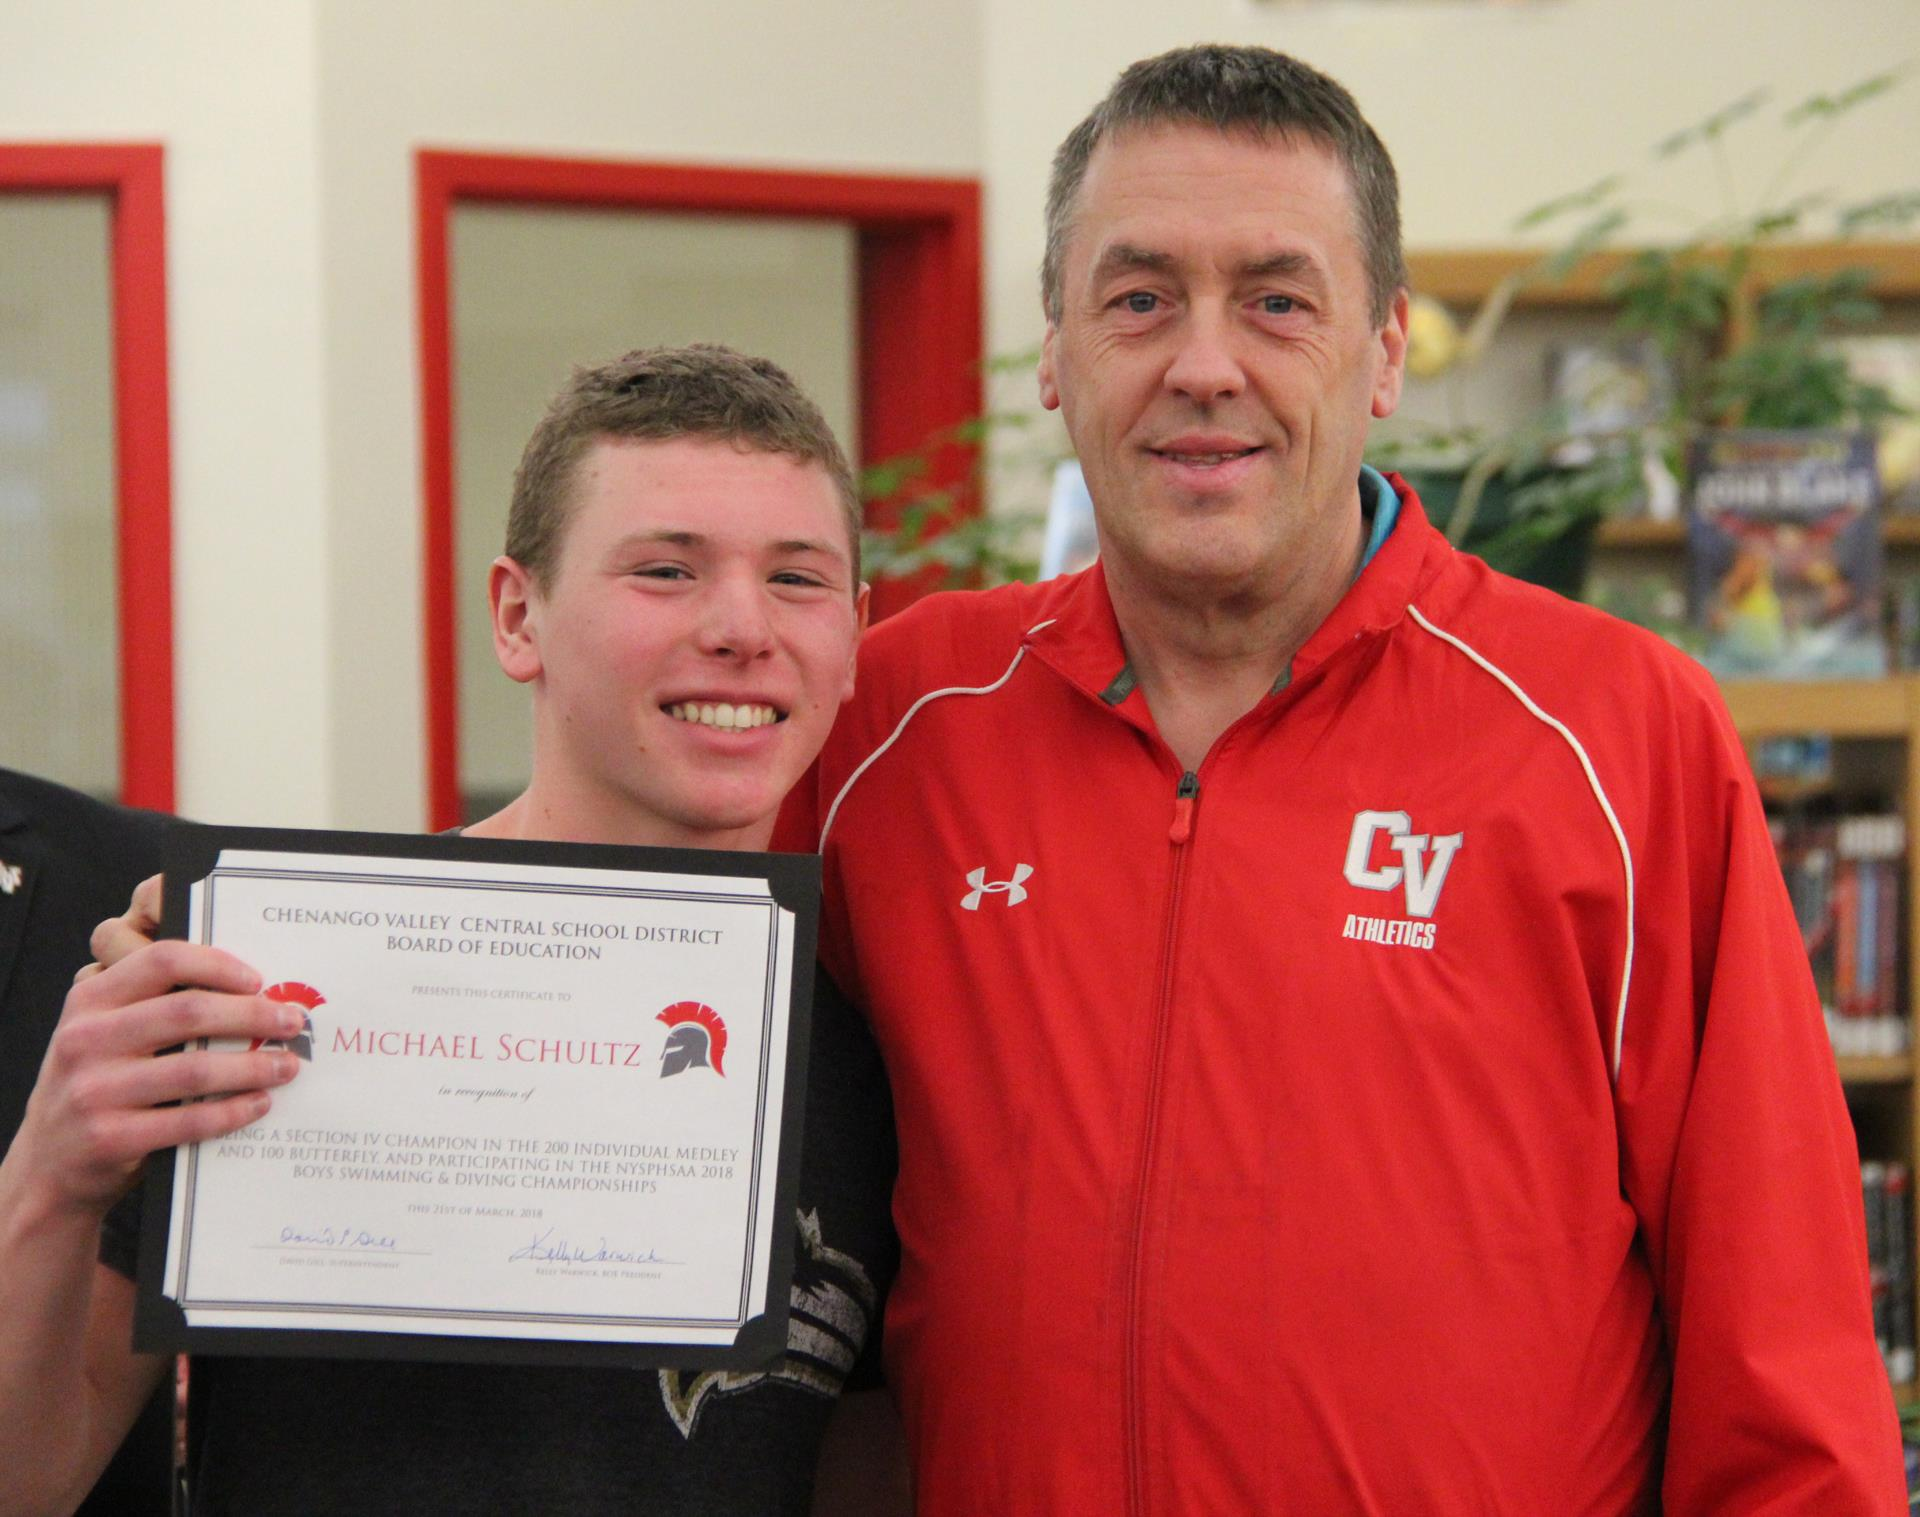 michael schultz and coach frayer